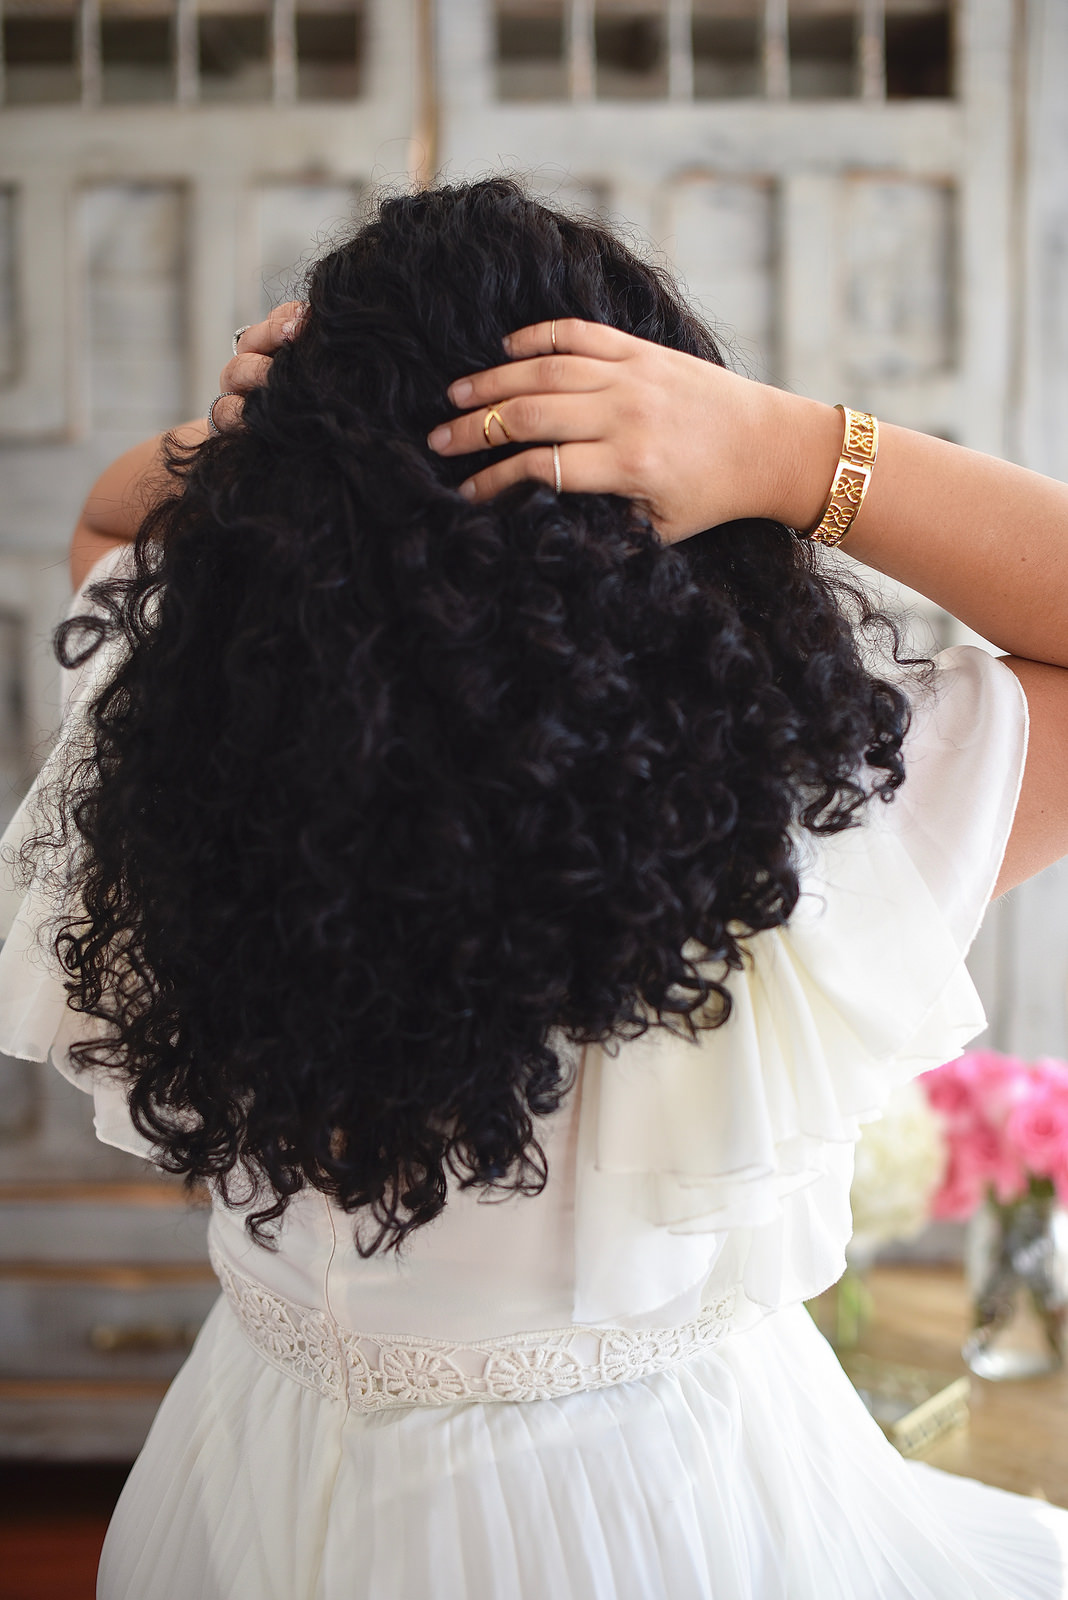 Girl With Curves blogger Tanesha Awasthi shares 7 tips for healthy hair.